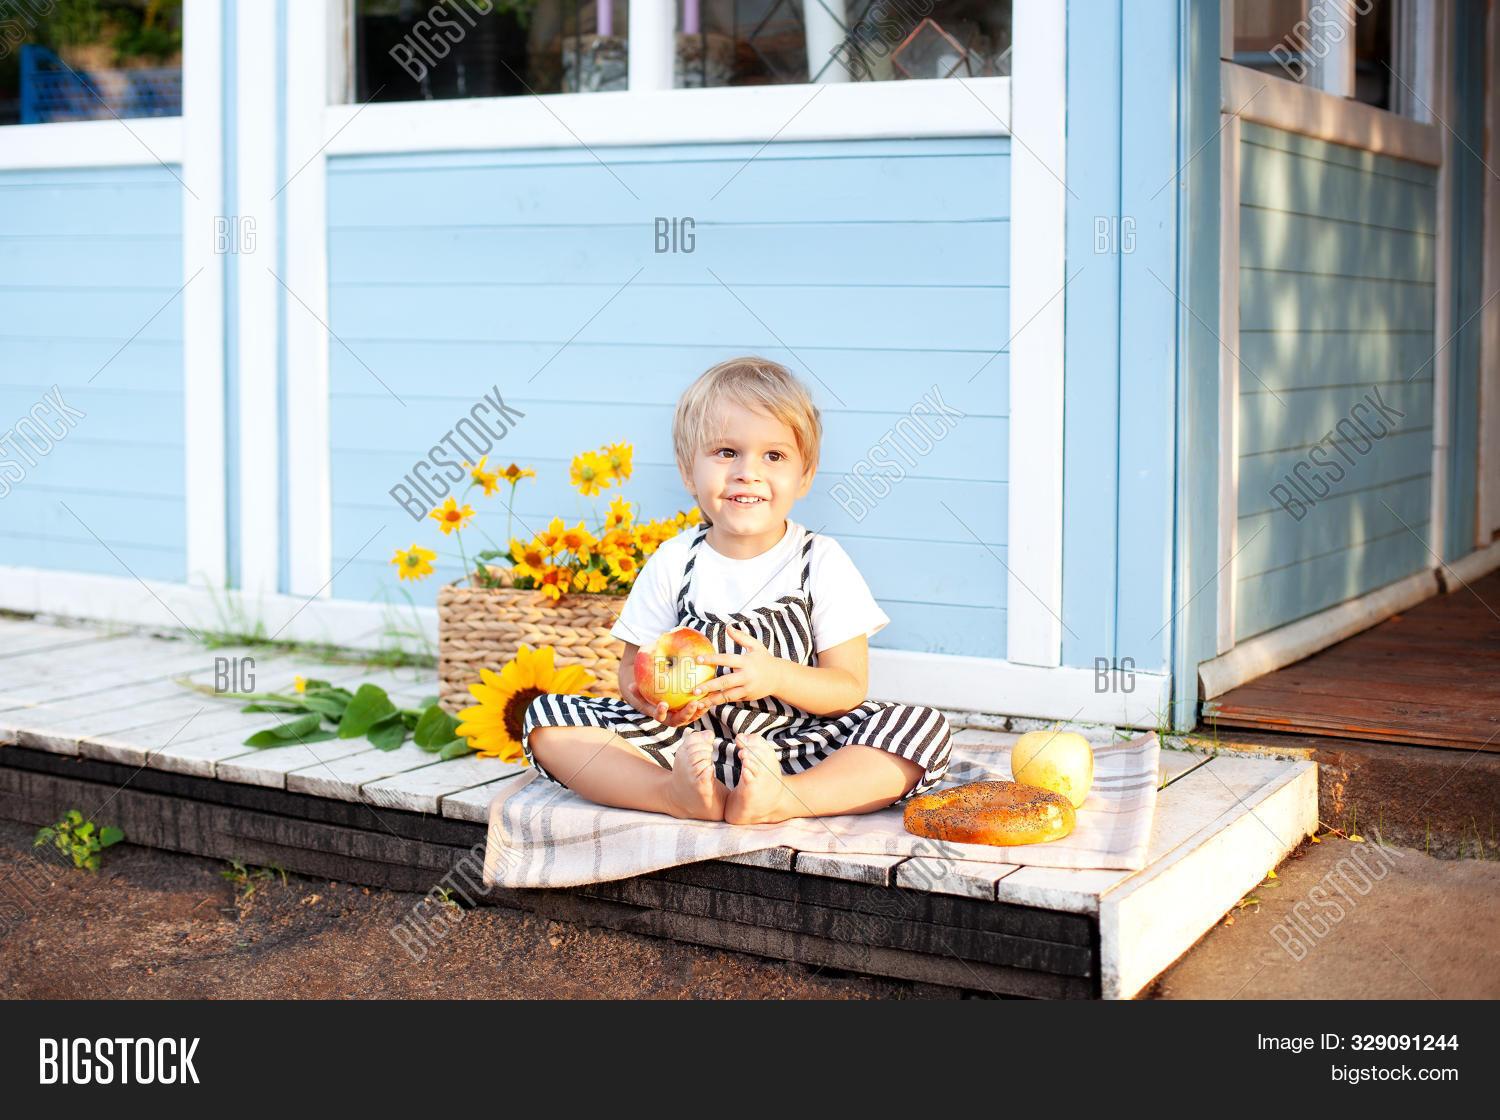 apple,autumn,baby,bagel,blue,boy,bread,breakfast,bun,casual,caucasian,child,childcare,childhood,country,countryside,farmer,farming,flower,food,fruit,garden,harvest,health,holiday,home,house,kid,kindergarten,lifestyle,little,morning,nature,nutrition,one,organic,outdoor,outside,people,picnic,play,porch,portrait,rustic,season,summer,toddler,village,white,young